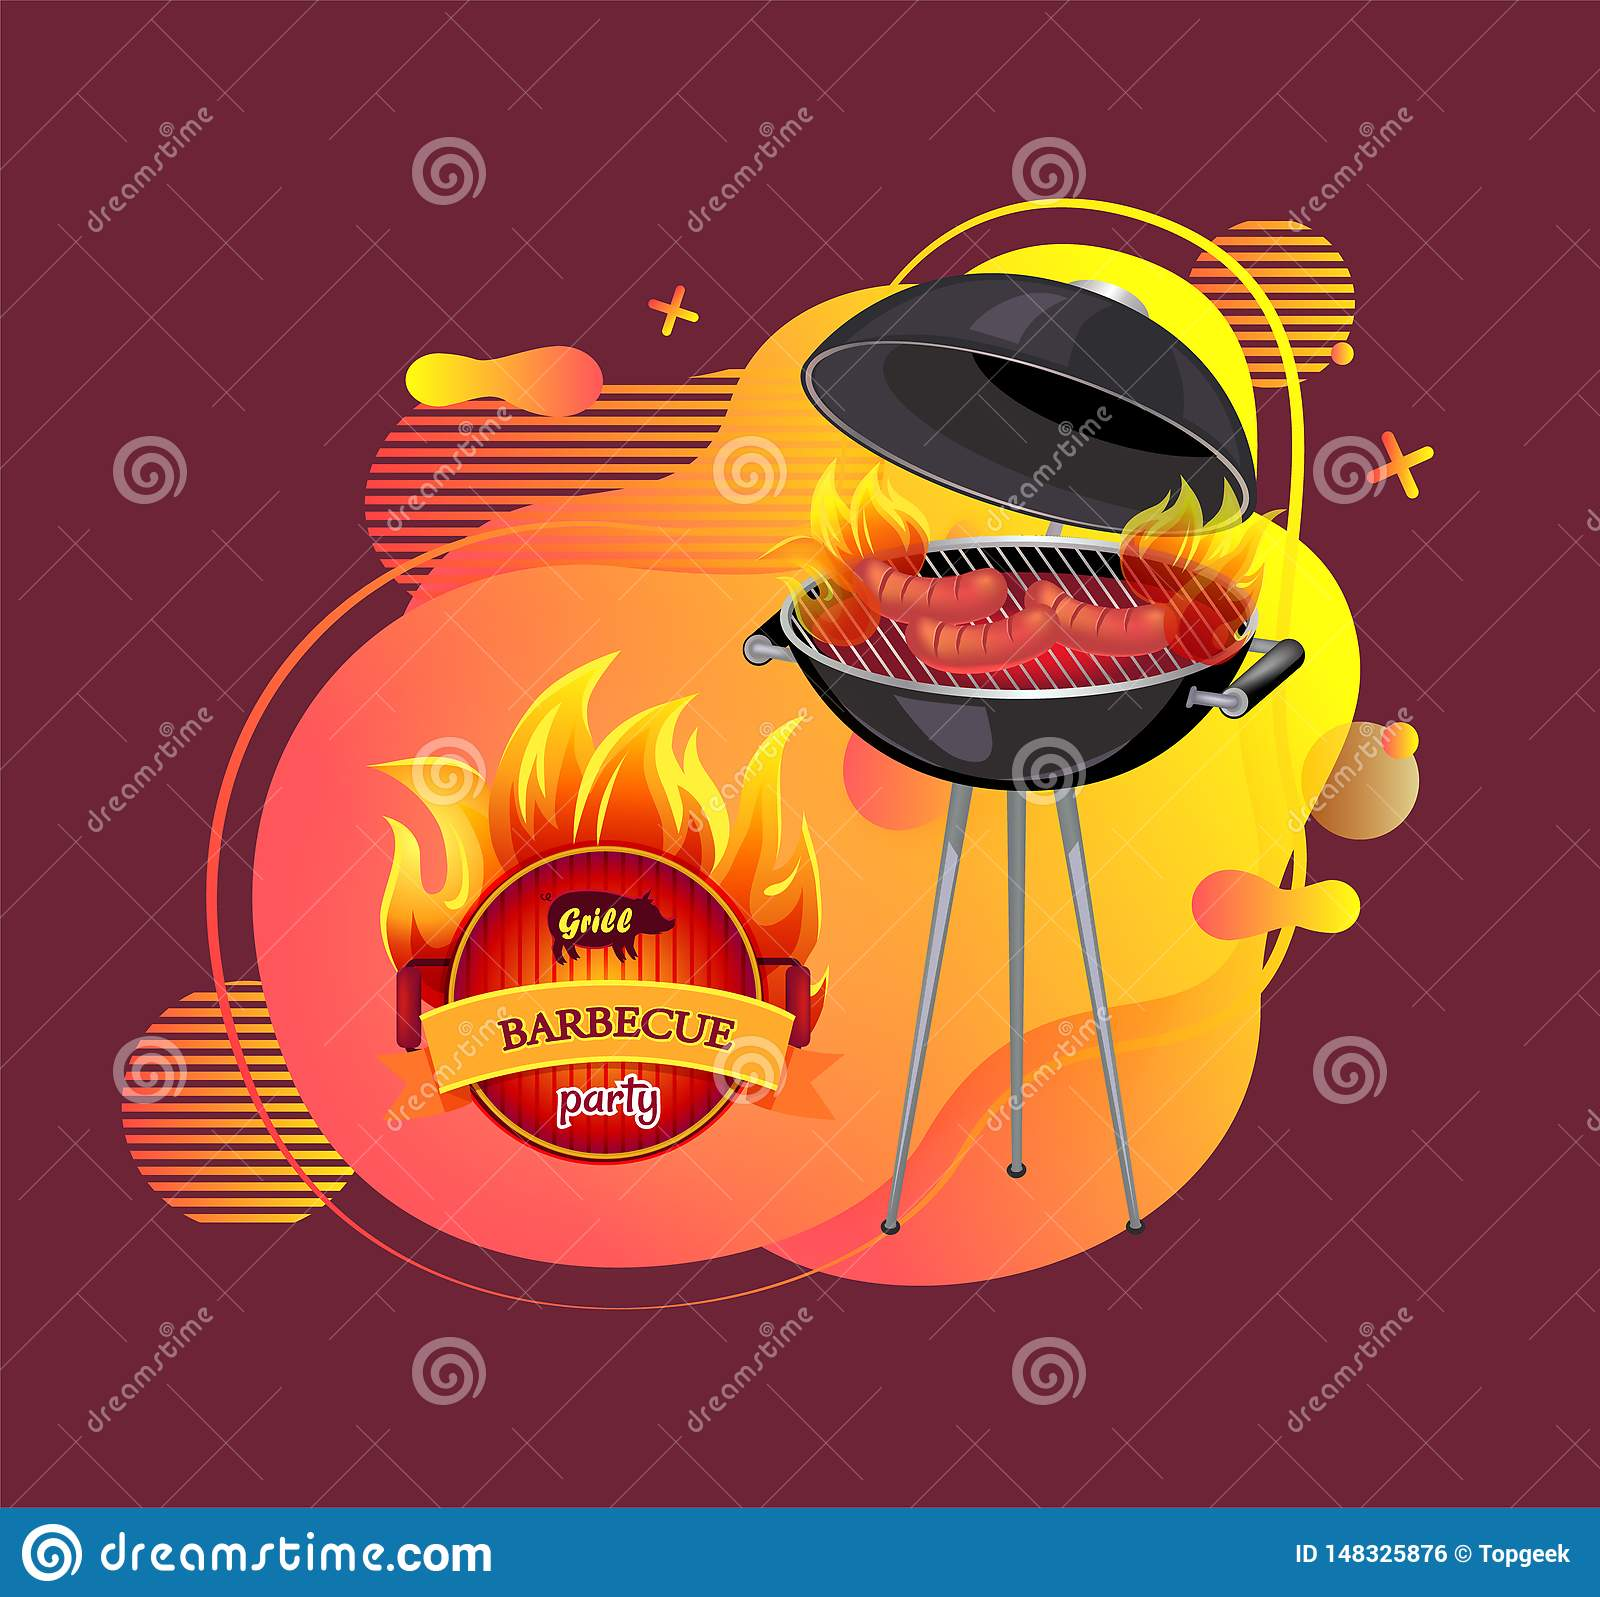 Barbeque Party Cookout and Grilling Banner Vector